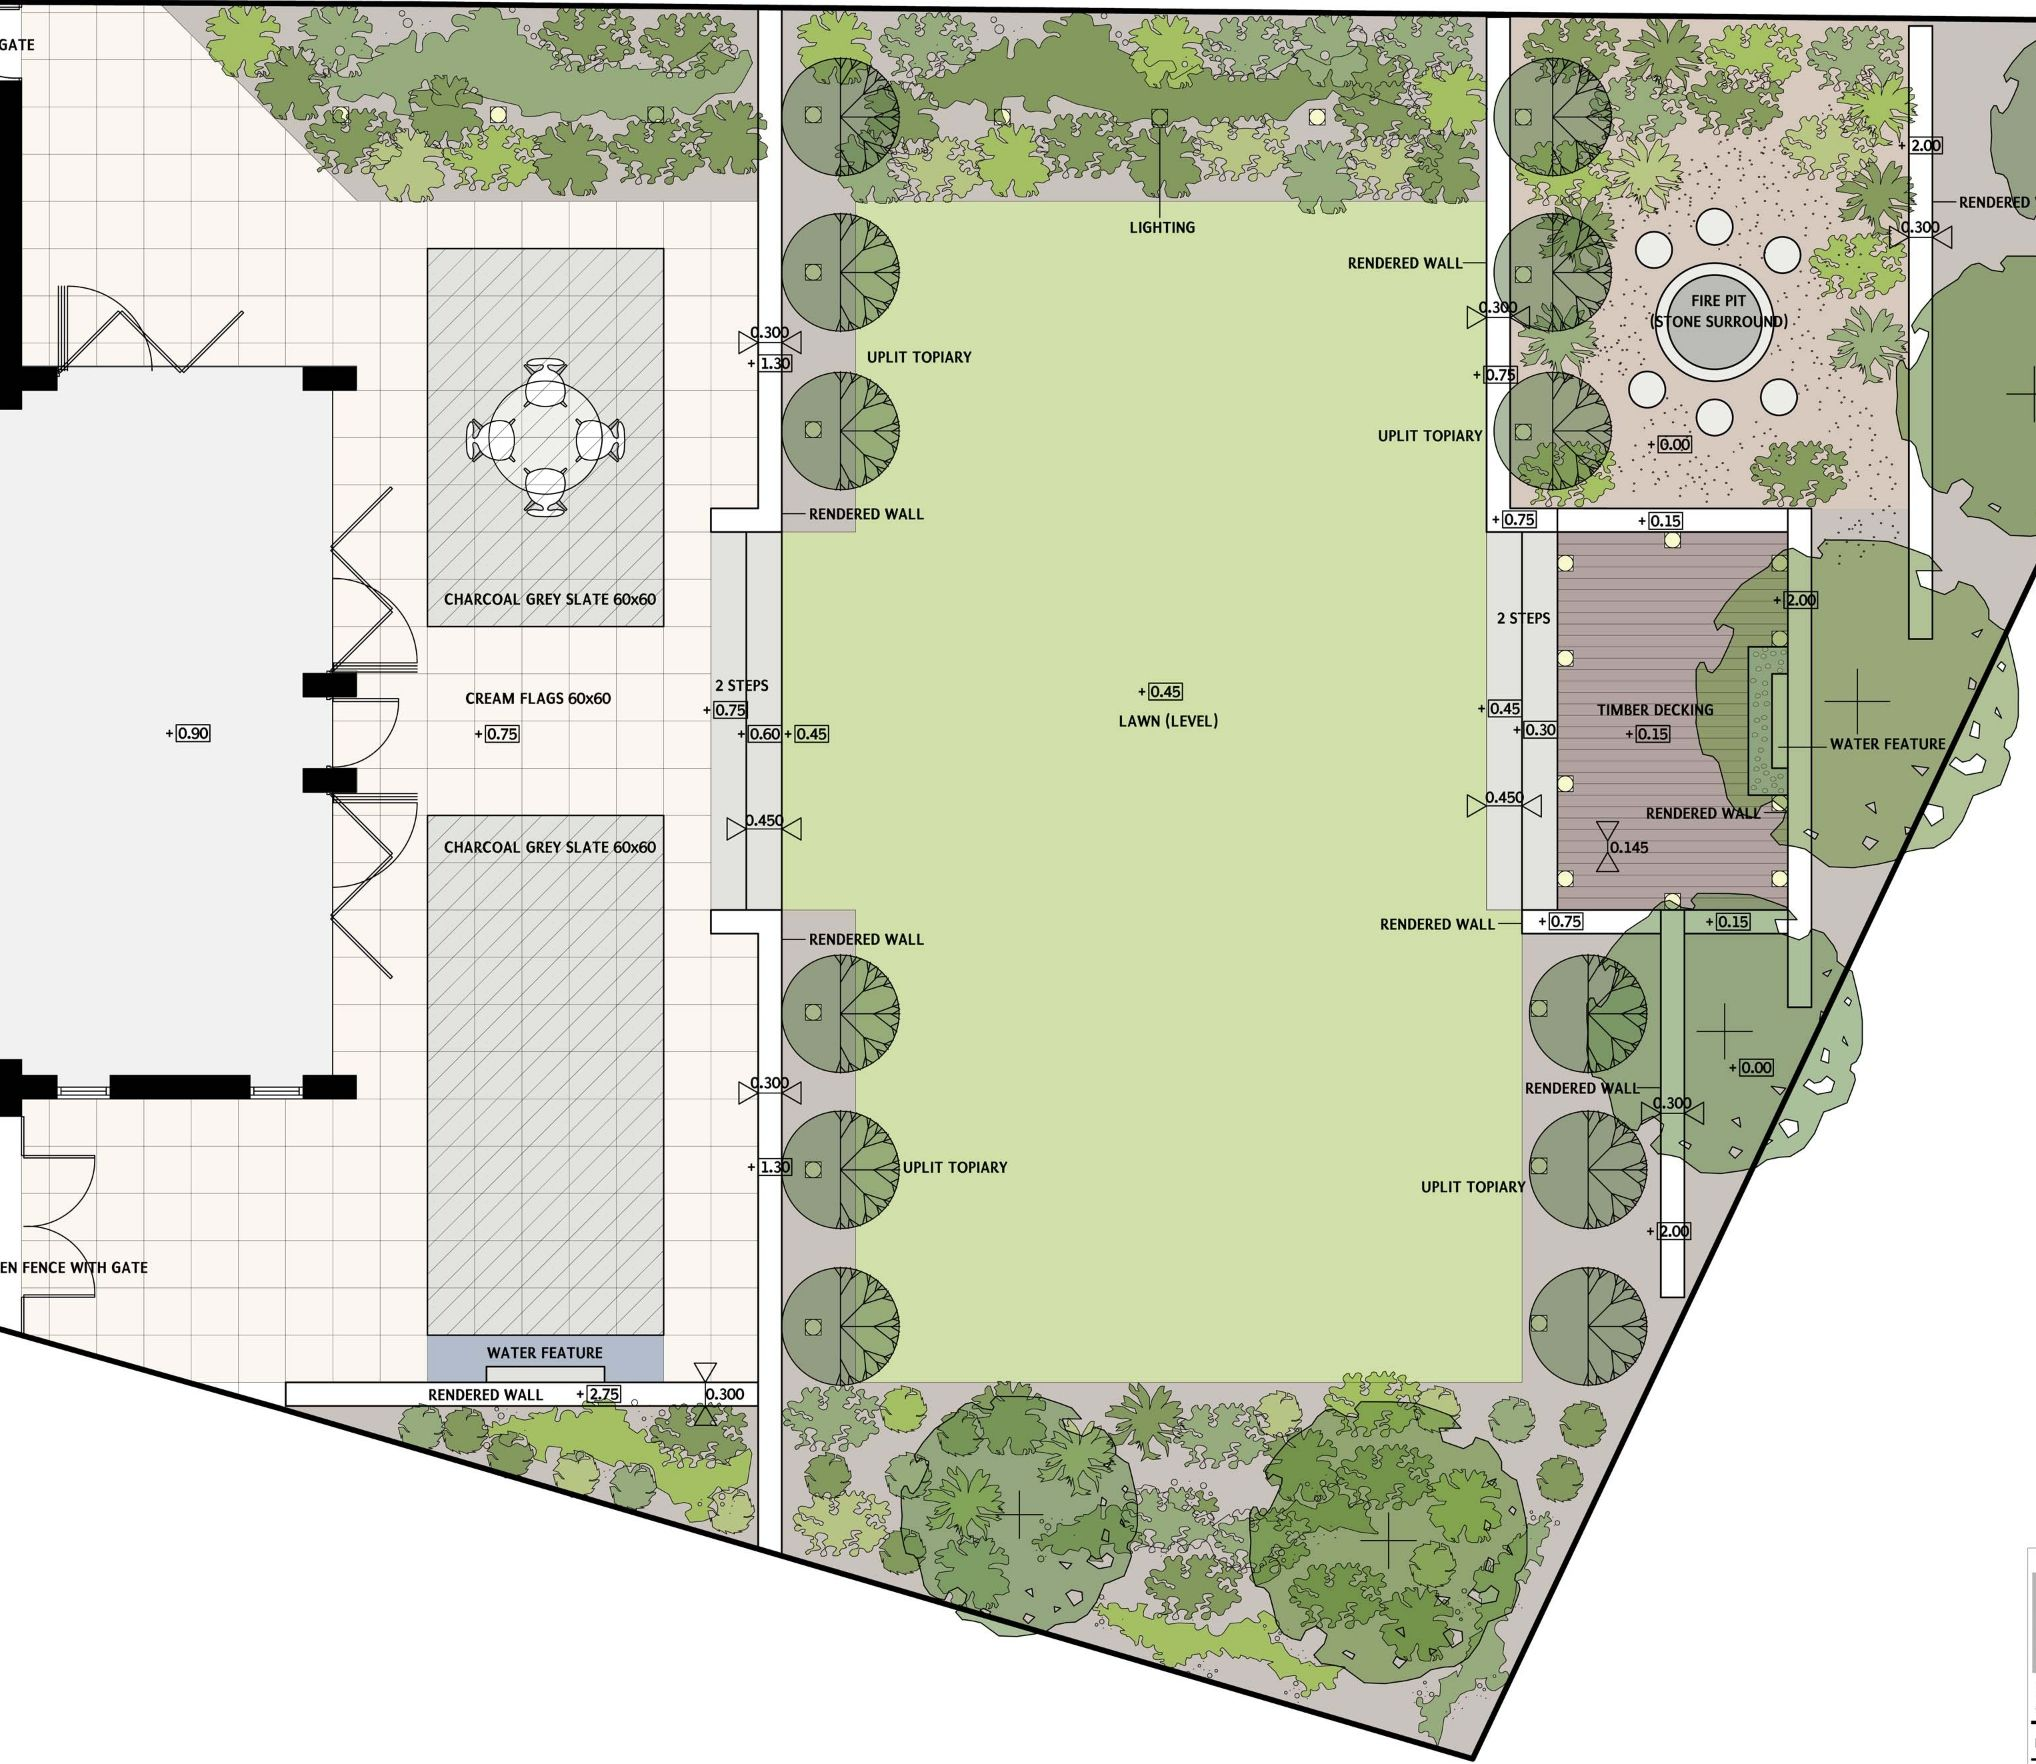 Pin By Christiane Von Burkersroda On Drawings And Garden Plans Garden Design Plans Garden Layout Garden Design Layout Modern